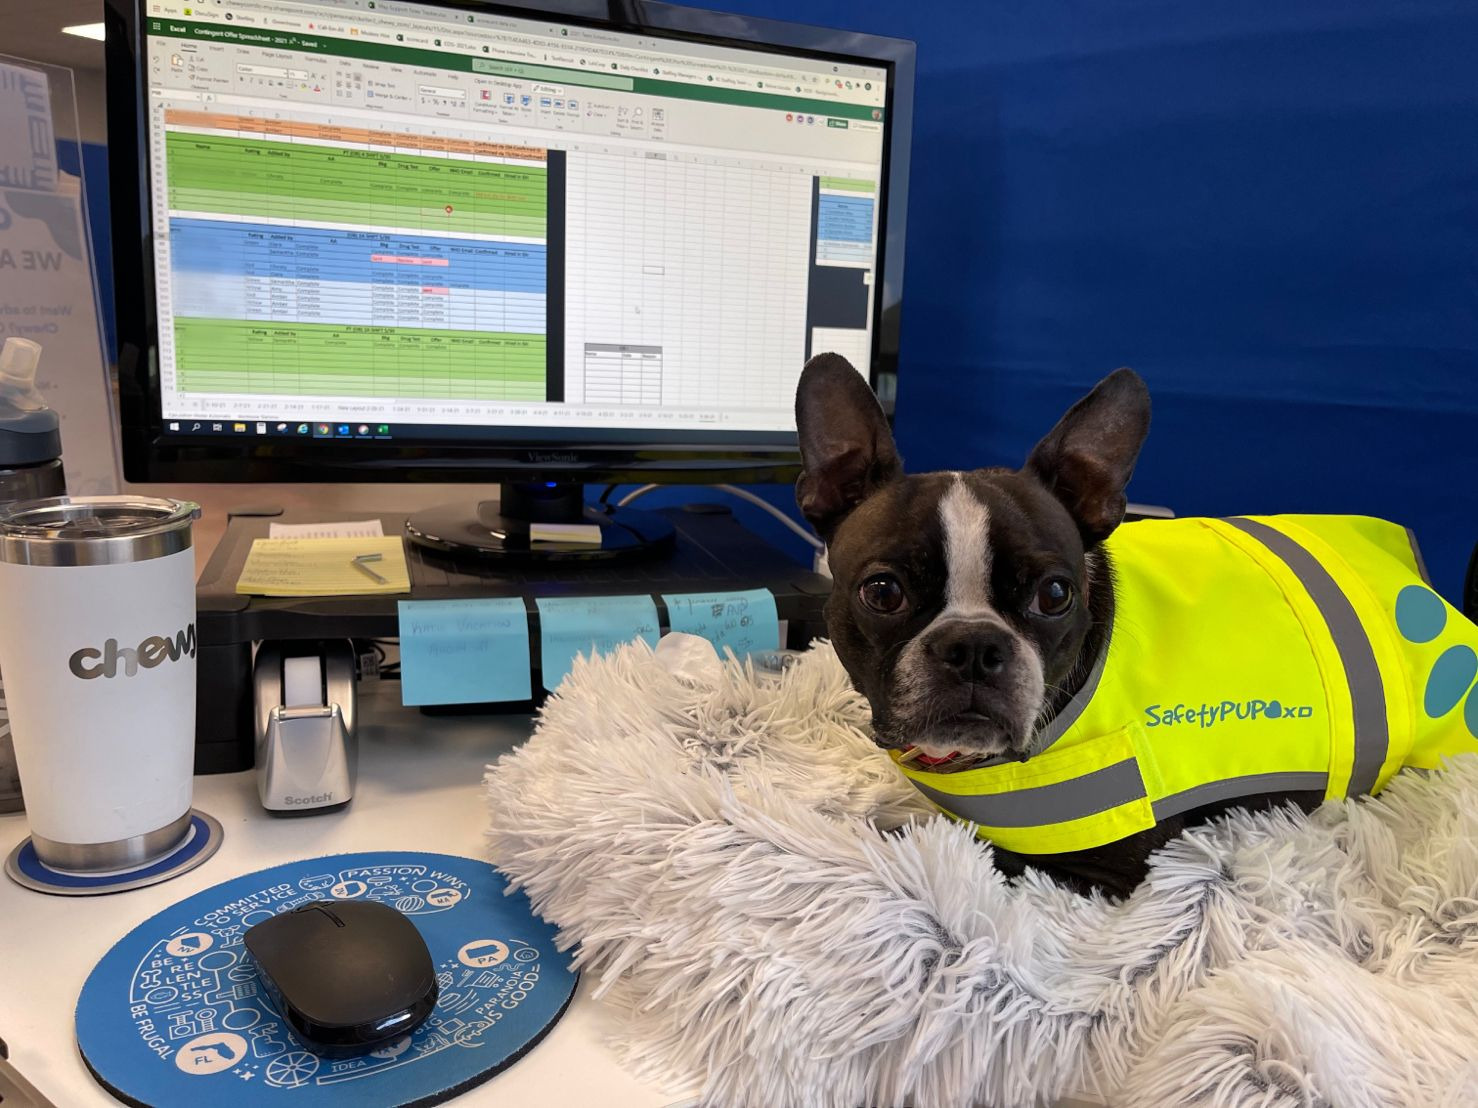 A black and white dog wearing a Chewy FC yellow vest, sitting on a bed on a desk